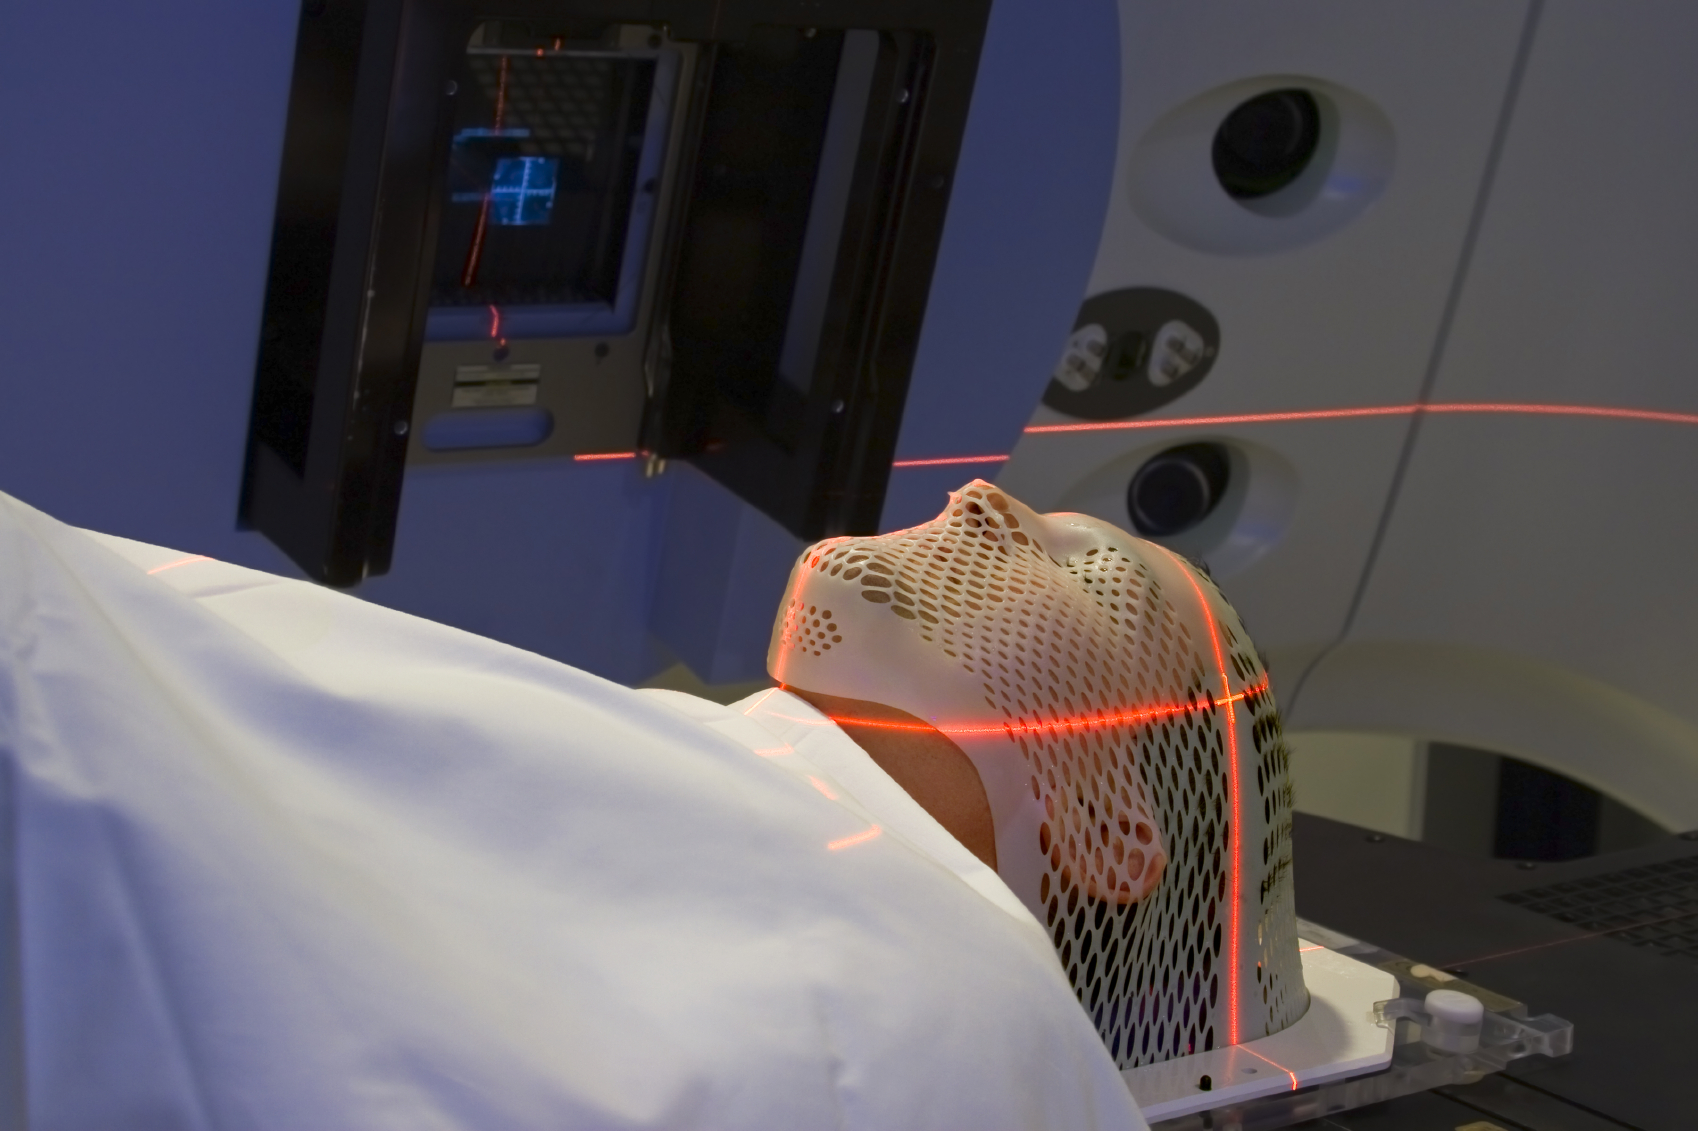 Astro Announces Elekta Support For Radiation Oncology